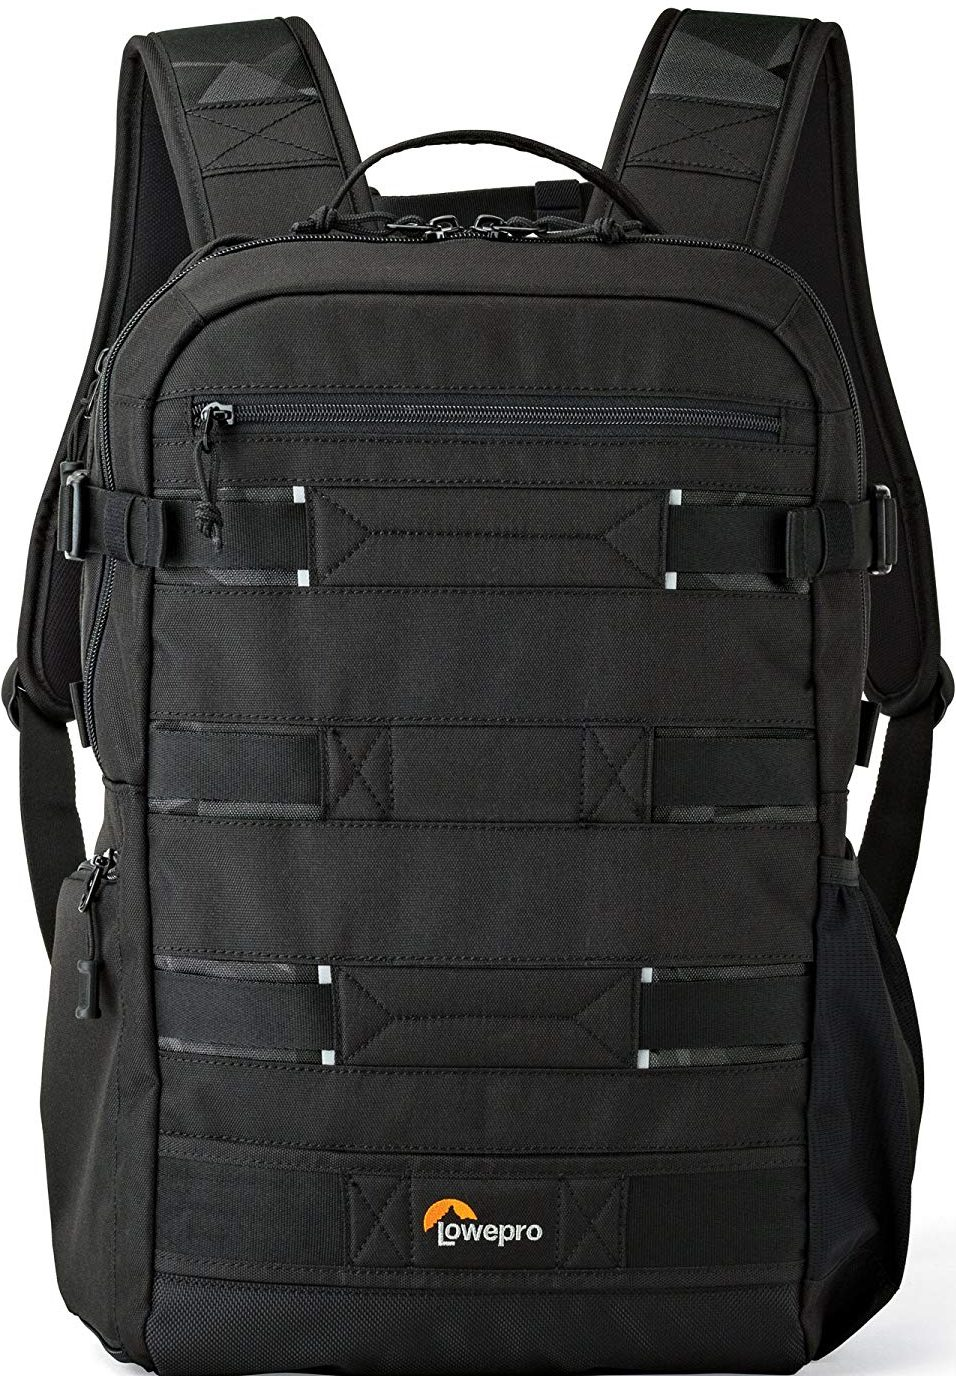 Lowepro ViewPoint Backpack